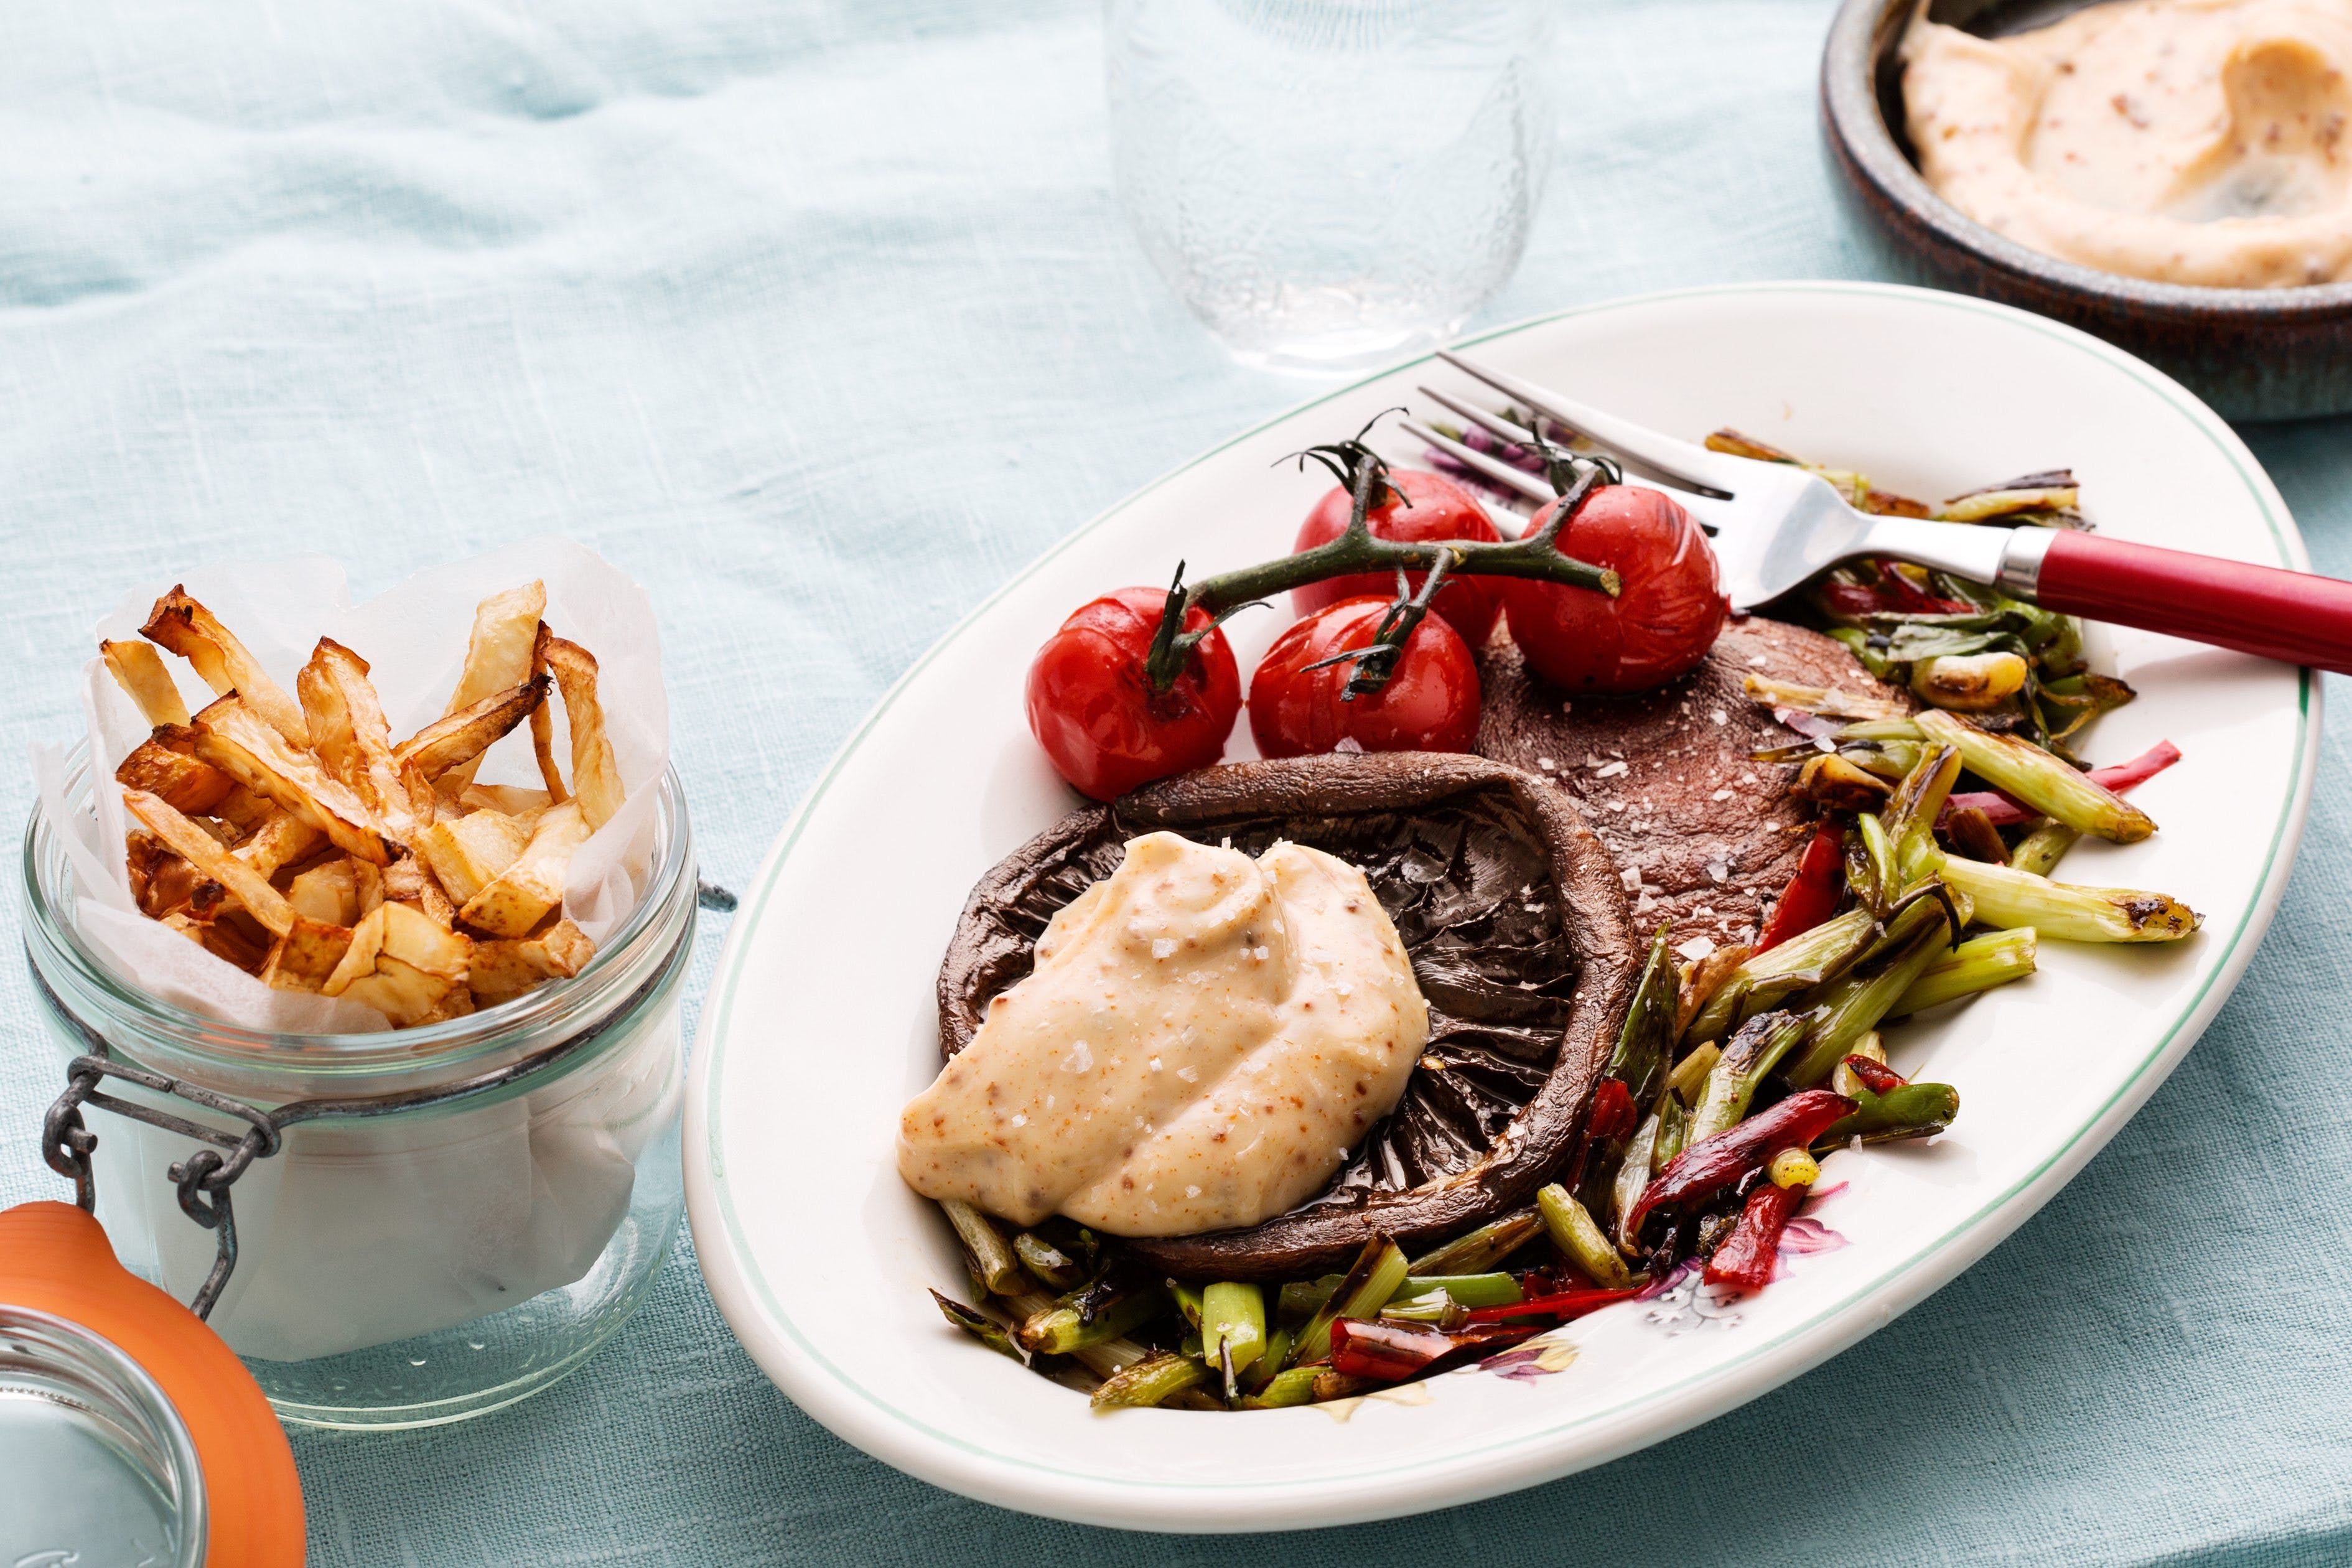 Portabello mushrooms with fries and aioli